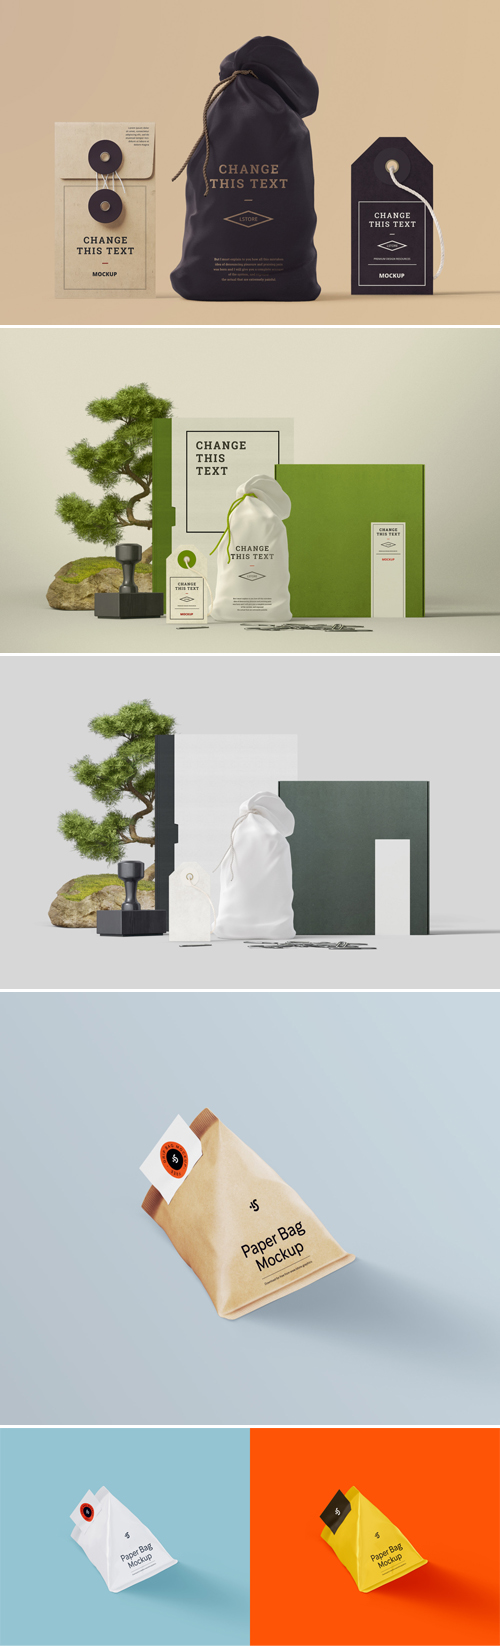 Box, Tag, Bag & Book PSD Mockups Templates